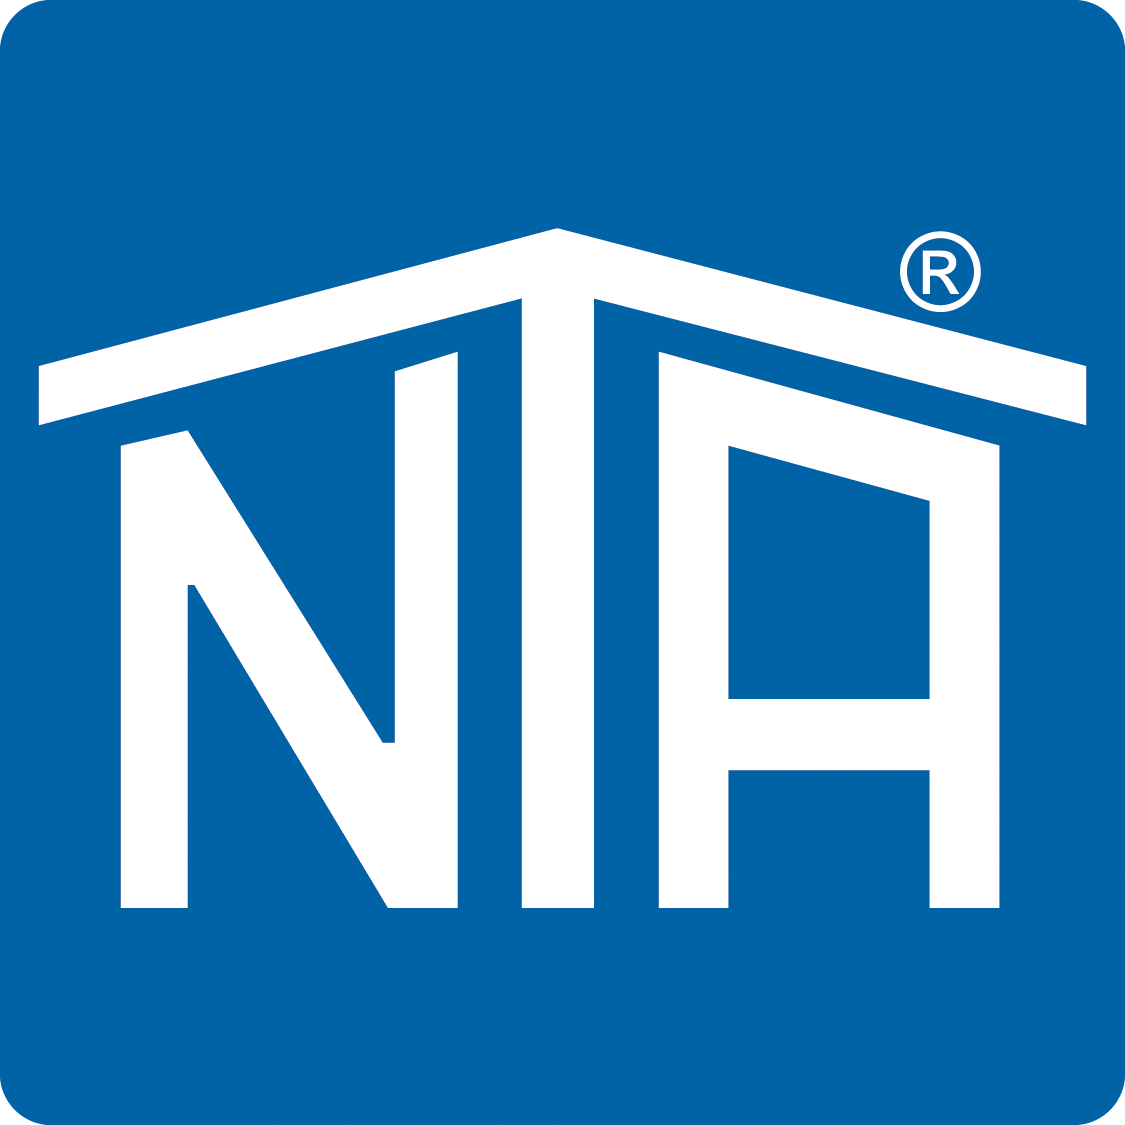 David R. Tompos, Founder Of NTA, Joins THIA Board